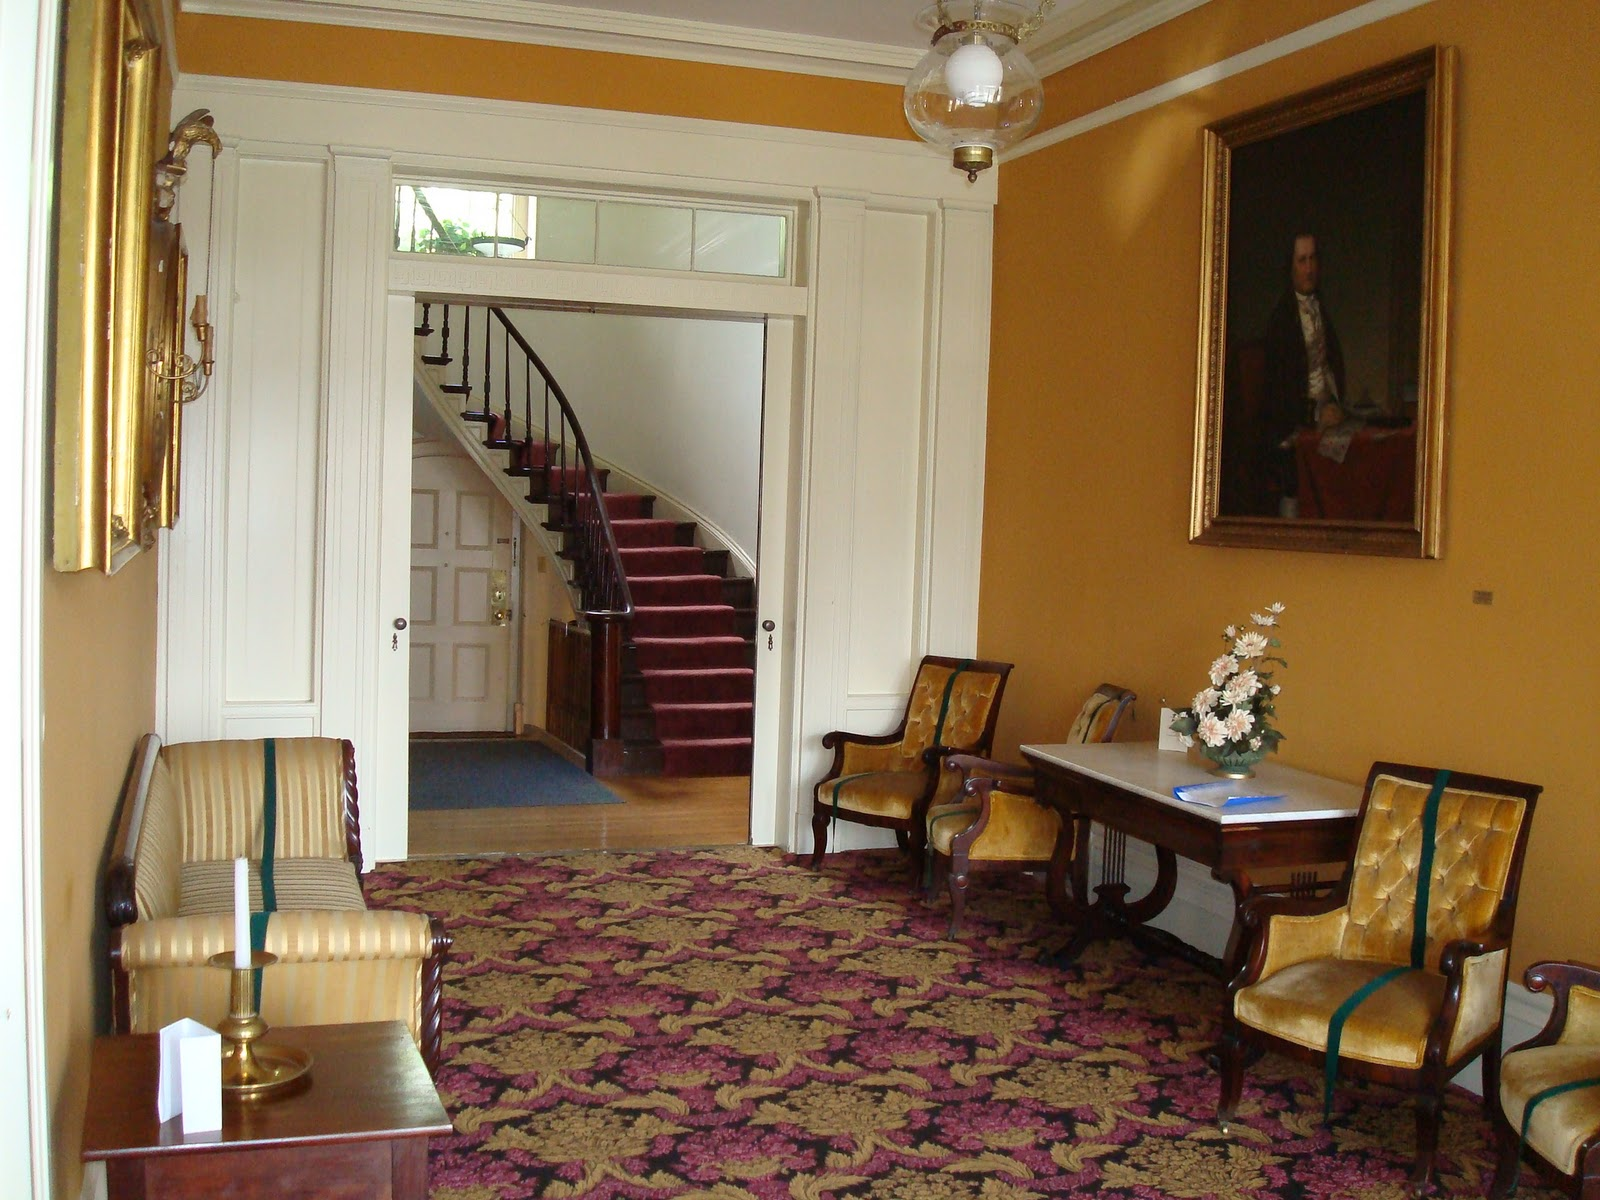 The entrance hall to the mansion features period furniture and a family portrait.